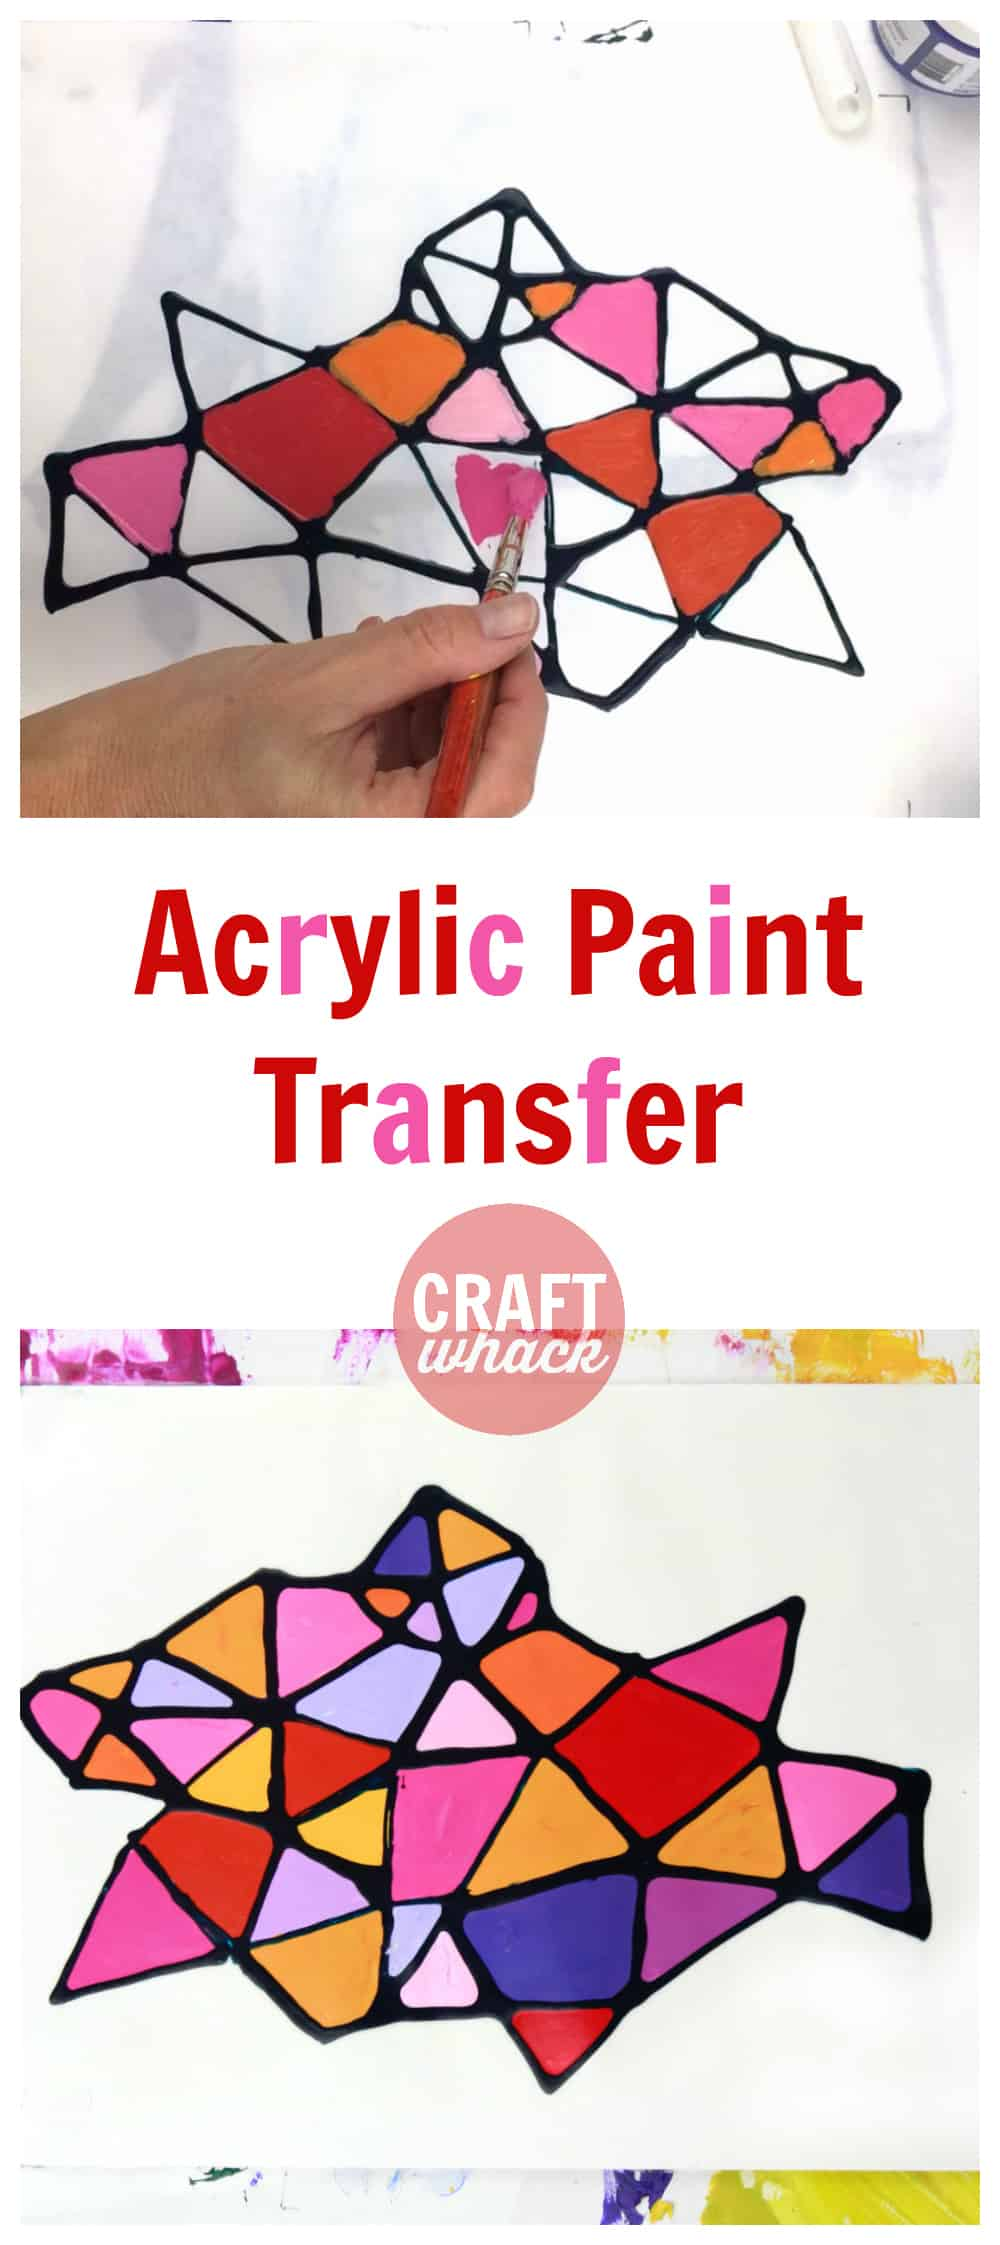 2 abstract acrylic paint designs showing how to do the acrylic paint transfer technique